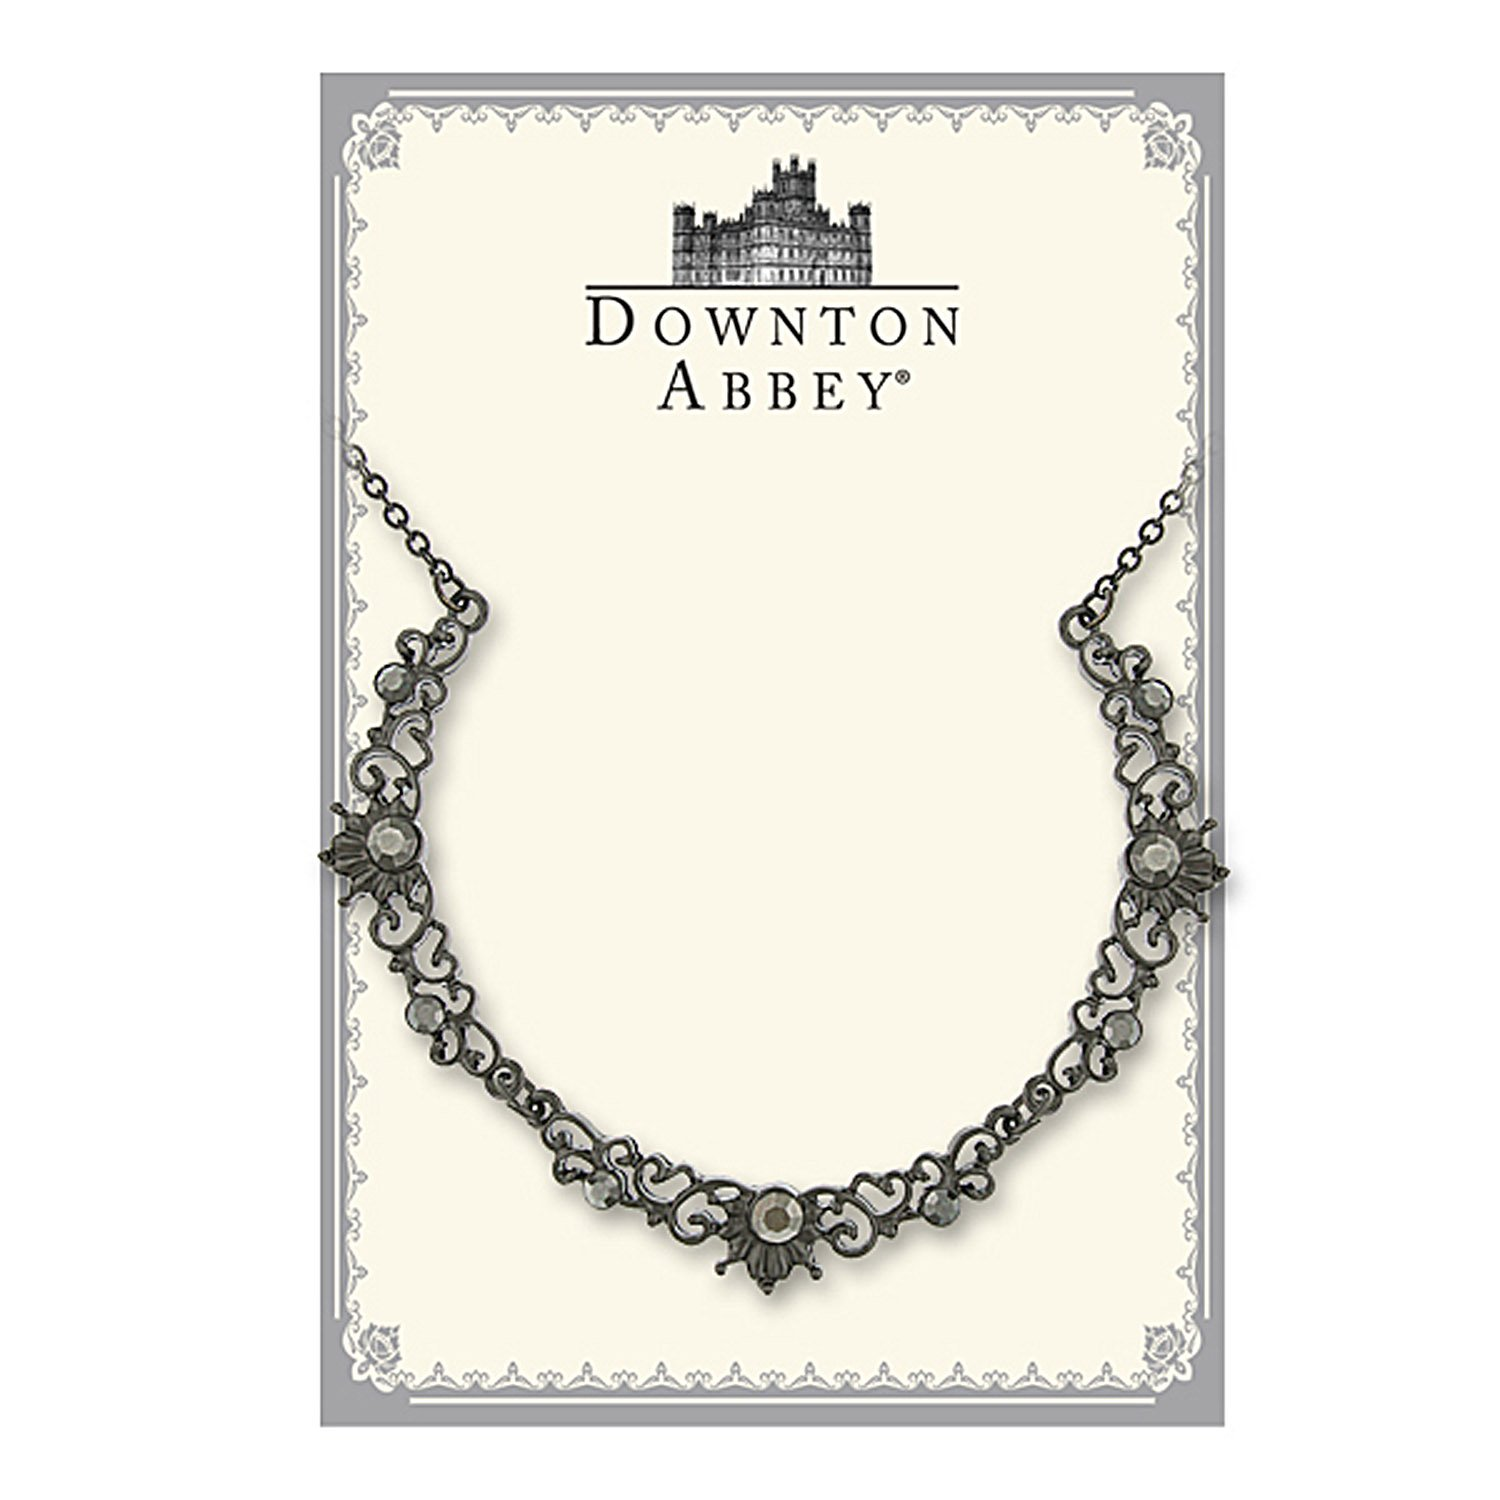 Downton Abbey Jeweled Heirlooms Boxed Belle Epoch Filigree Scallop Emerald Pendant Necklace 16